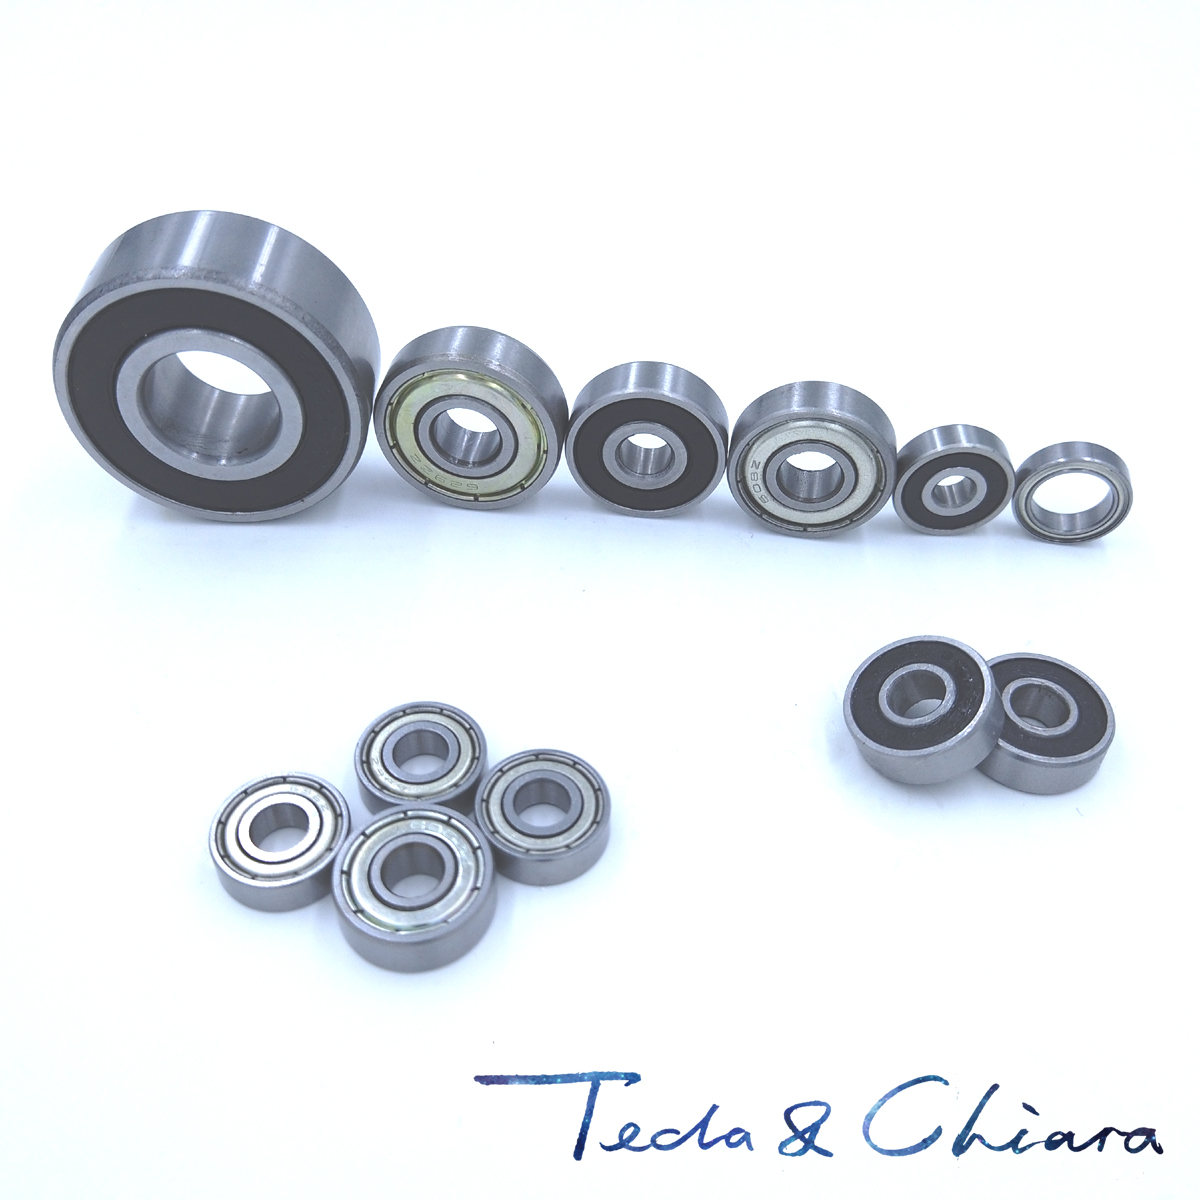 6200 6200ZZ 6200RS 6200-2Z 6200Z 6200-2RS ZZ RS RZ 2RZ Deep Groove Ball Bearings 10 X 30 X 9mm